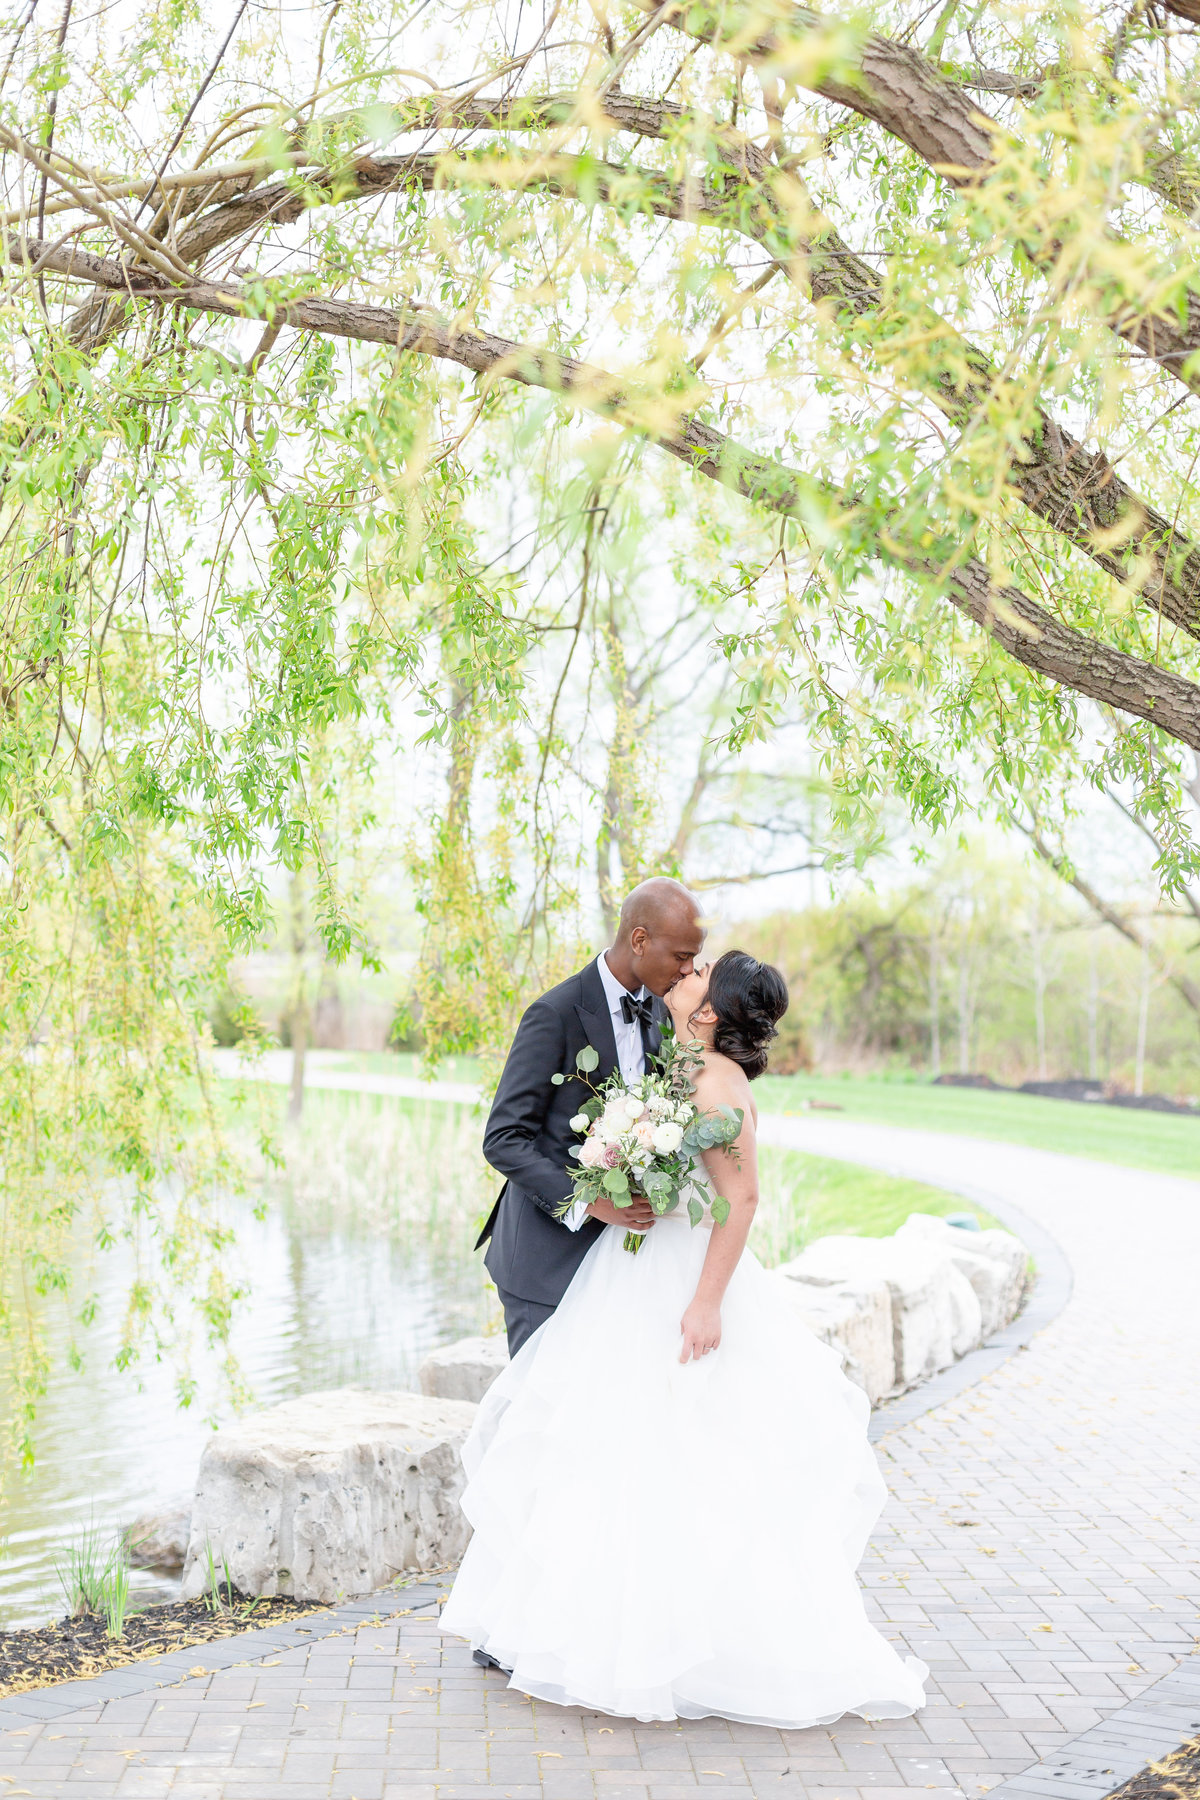 arlington-estae-Vicky-and-Emmanuel-Wedding-Bride-and-Groom-Chris-and-Micaela-Photography-82